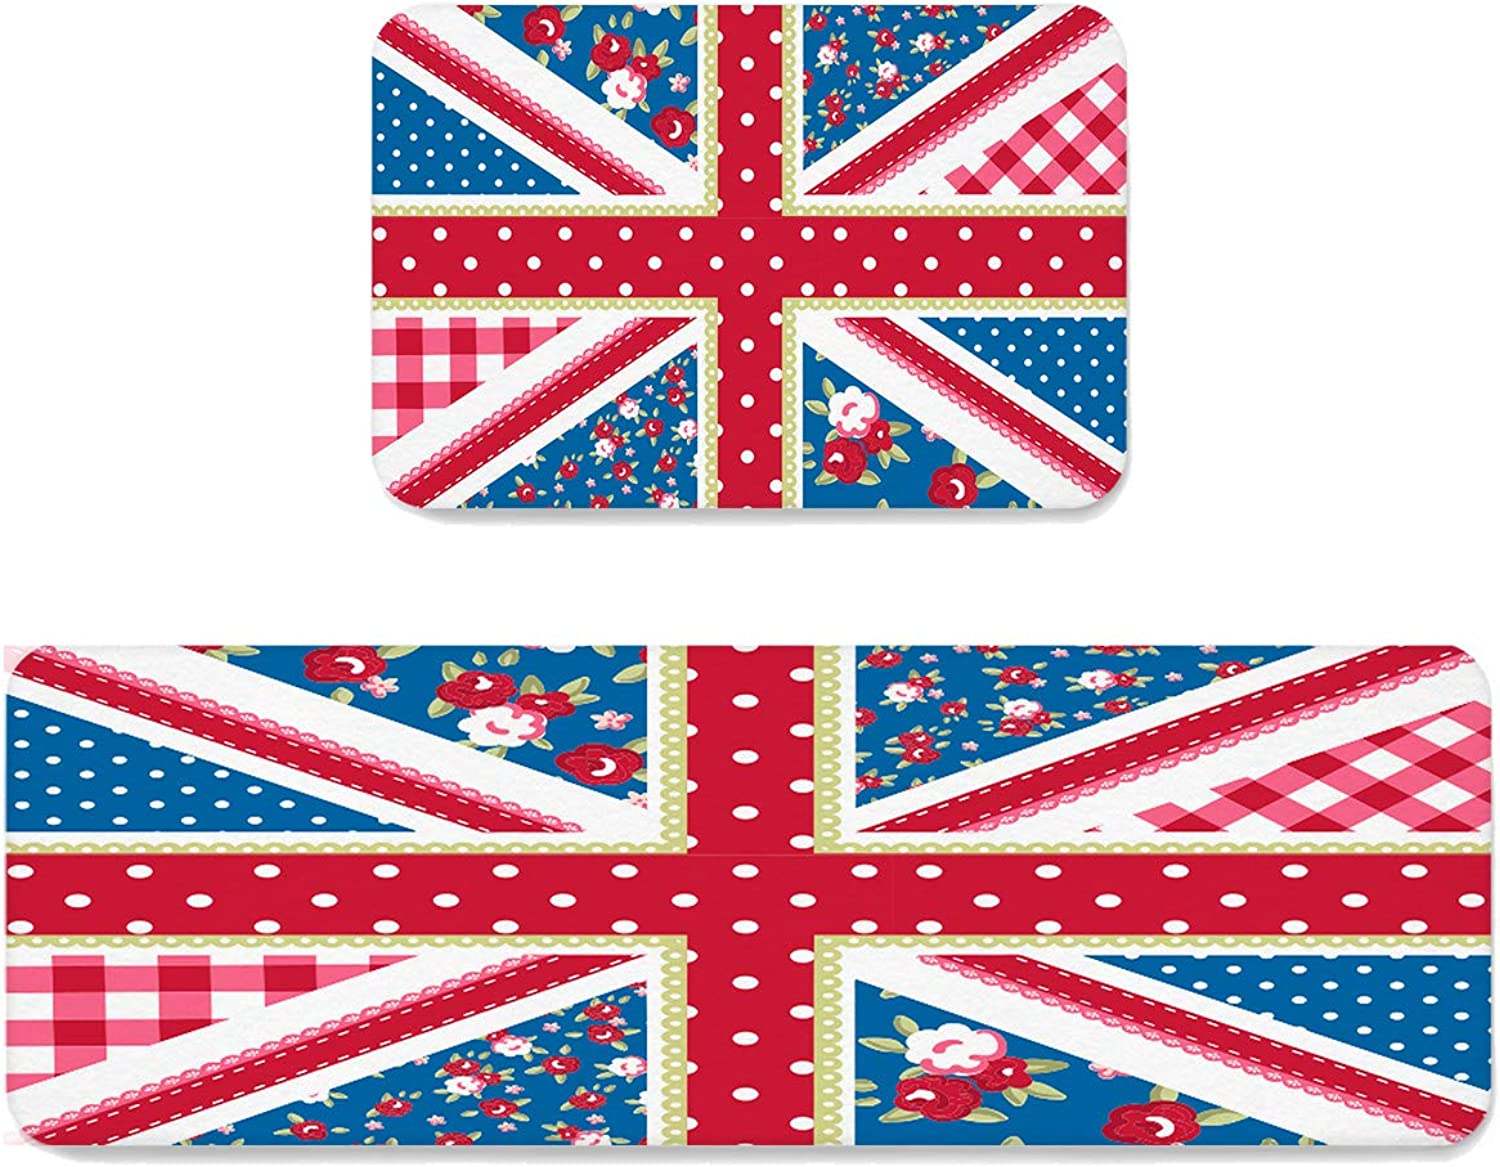 Sun-Shine Indoor Area Runner Rugs Water Absorb Doormats 2 Pieces, Britain National Flag Non-Slip Mat Entrance shoes Scraper Carpet Pads for Kitchen Hallway Floor Decorations, UK Flag and Floral